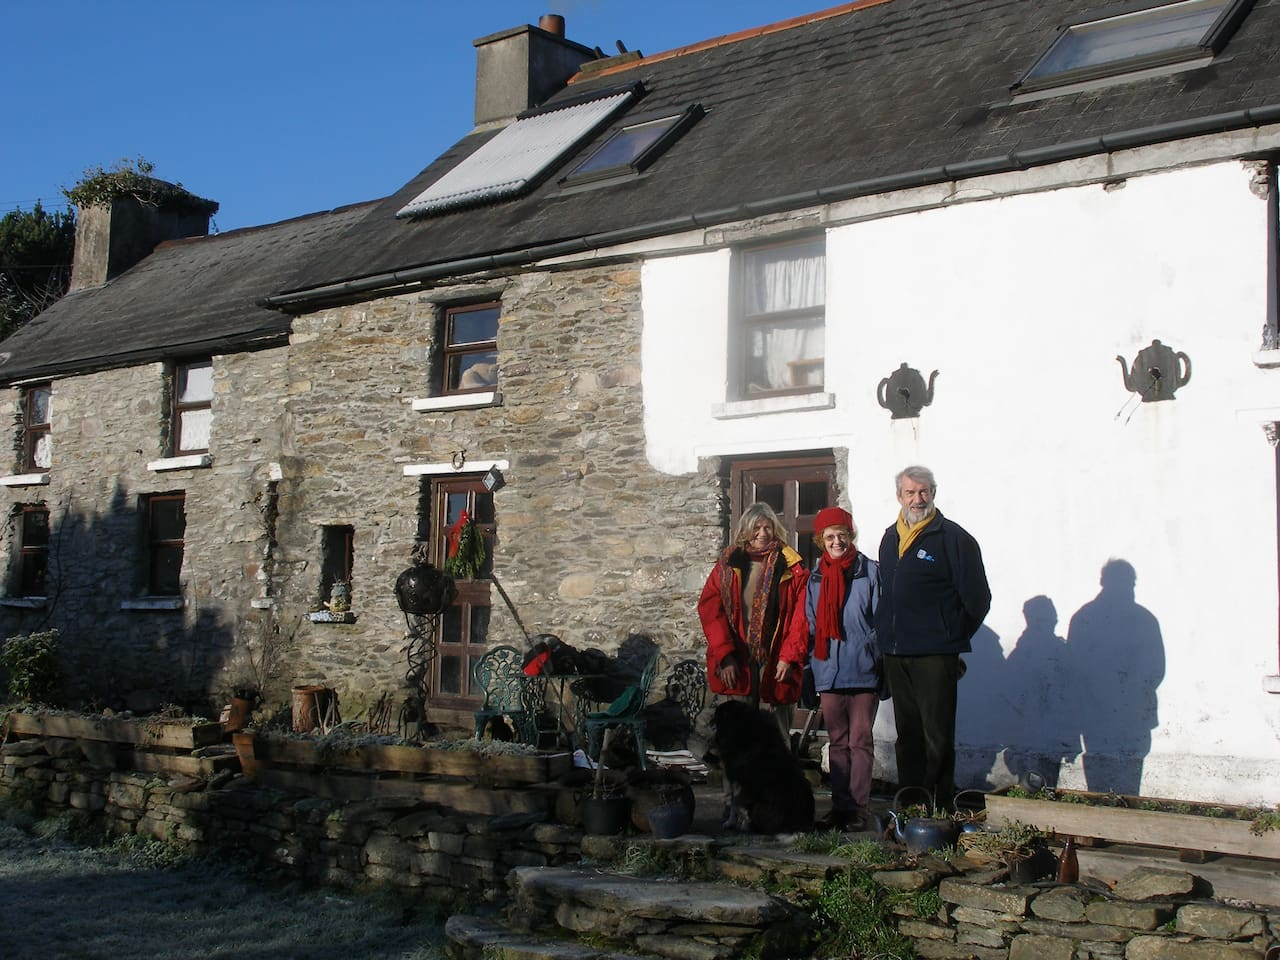 Guests preparing for a walk in the sunshine, January 2010